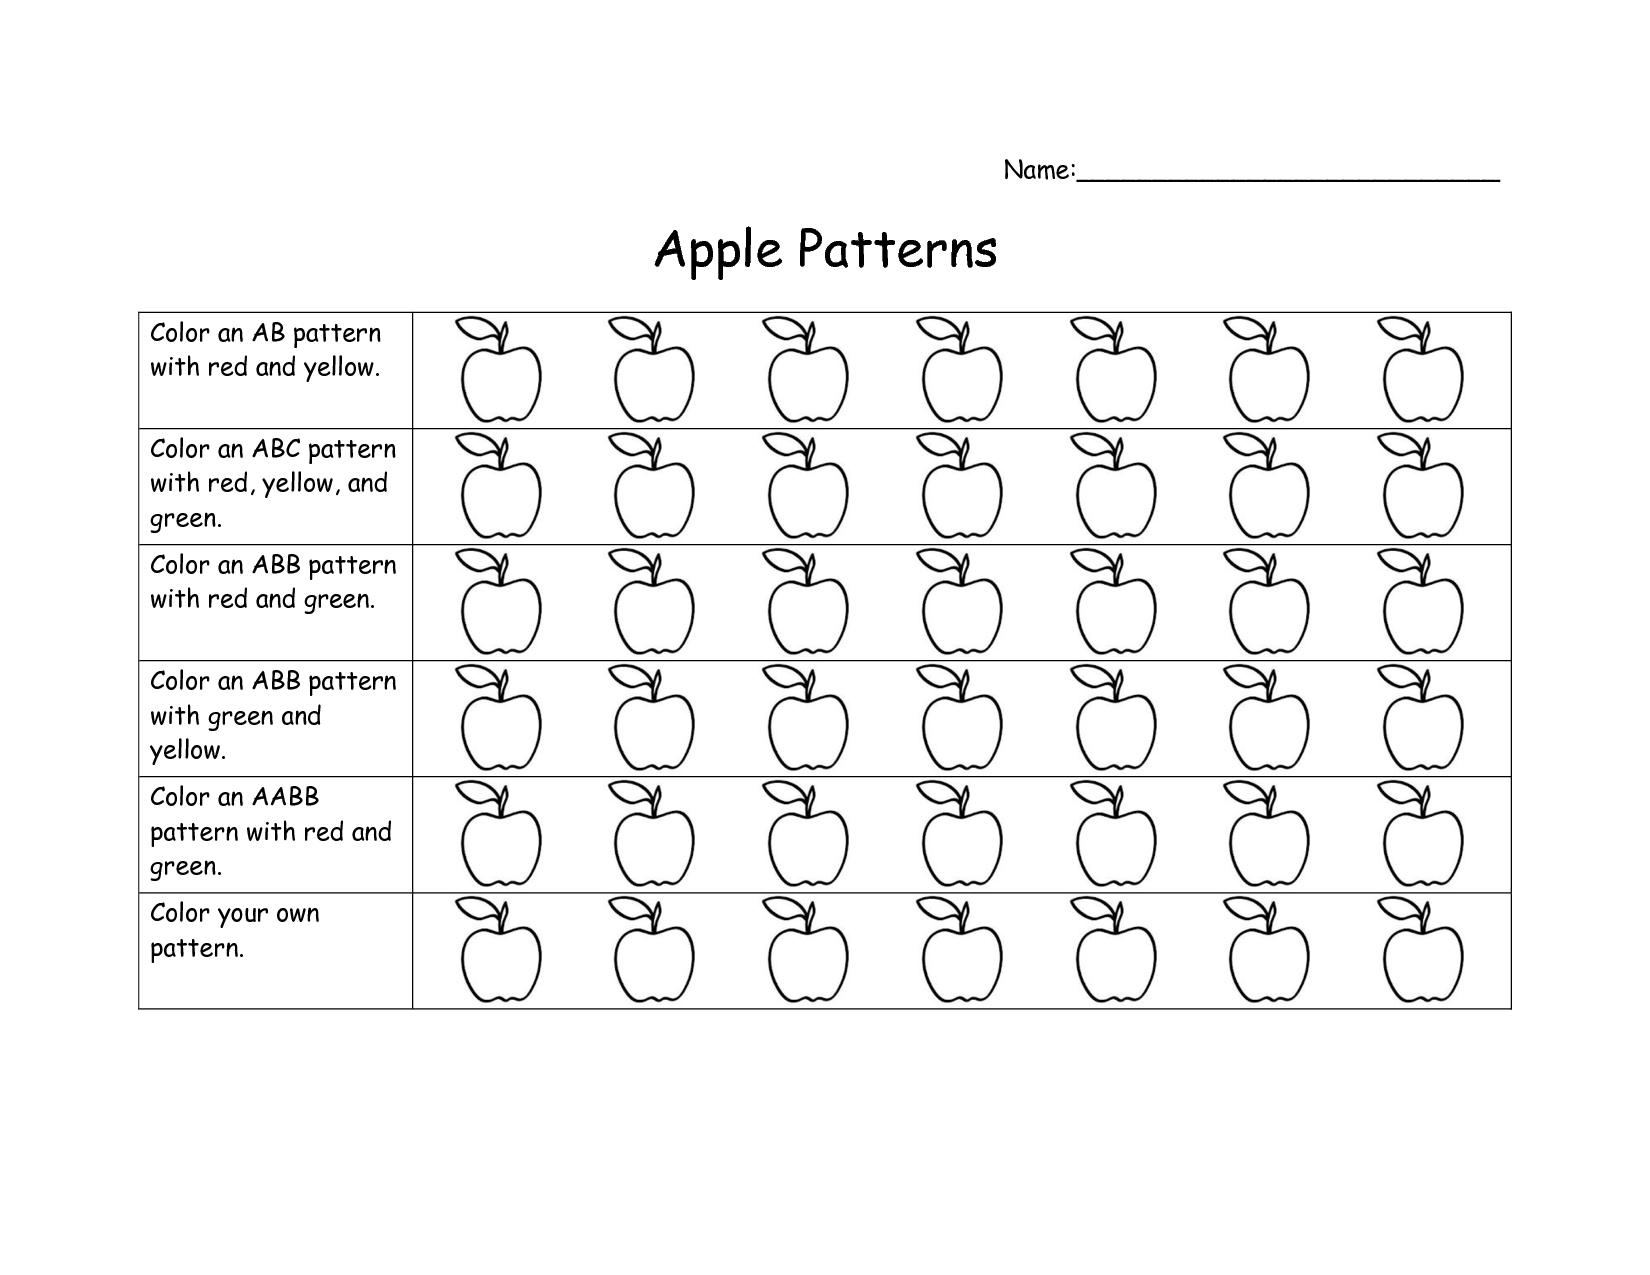 Worksheet For Patterns